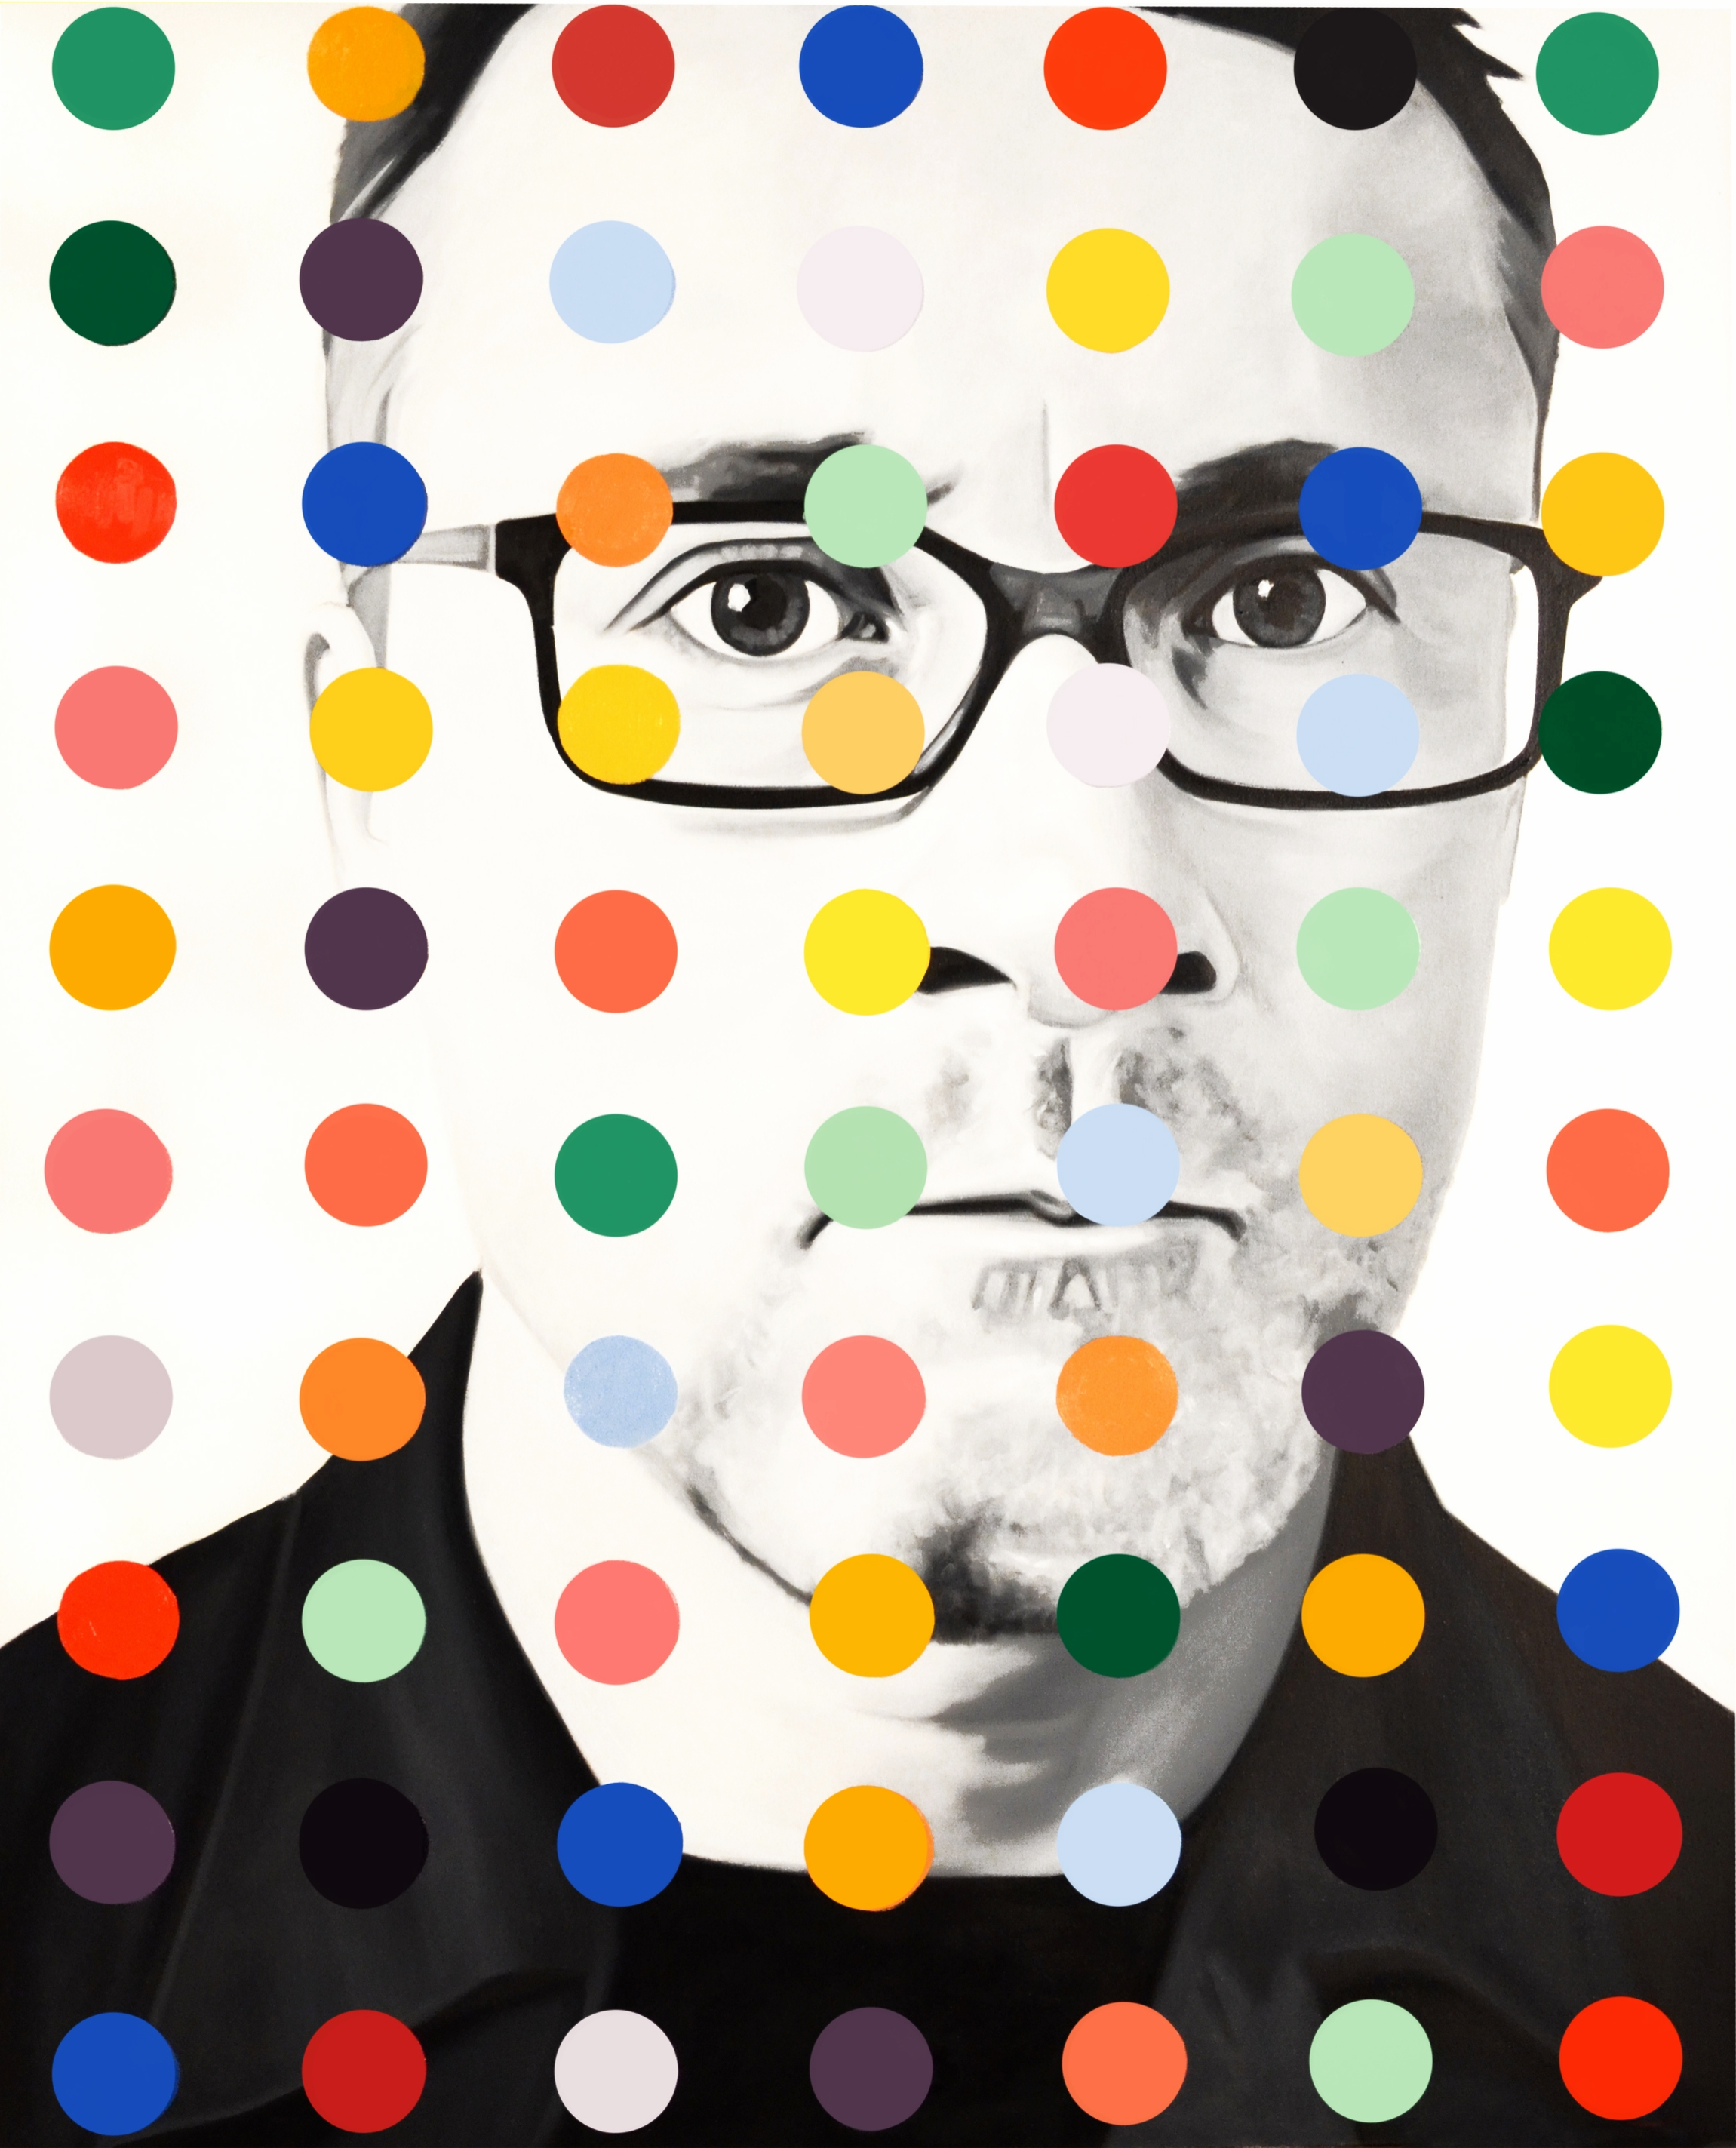 Damien Dot  Oil on Canvas  -  54 x 44in  -  2013                                          SOLD